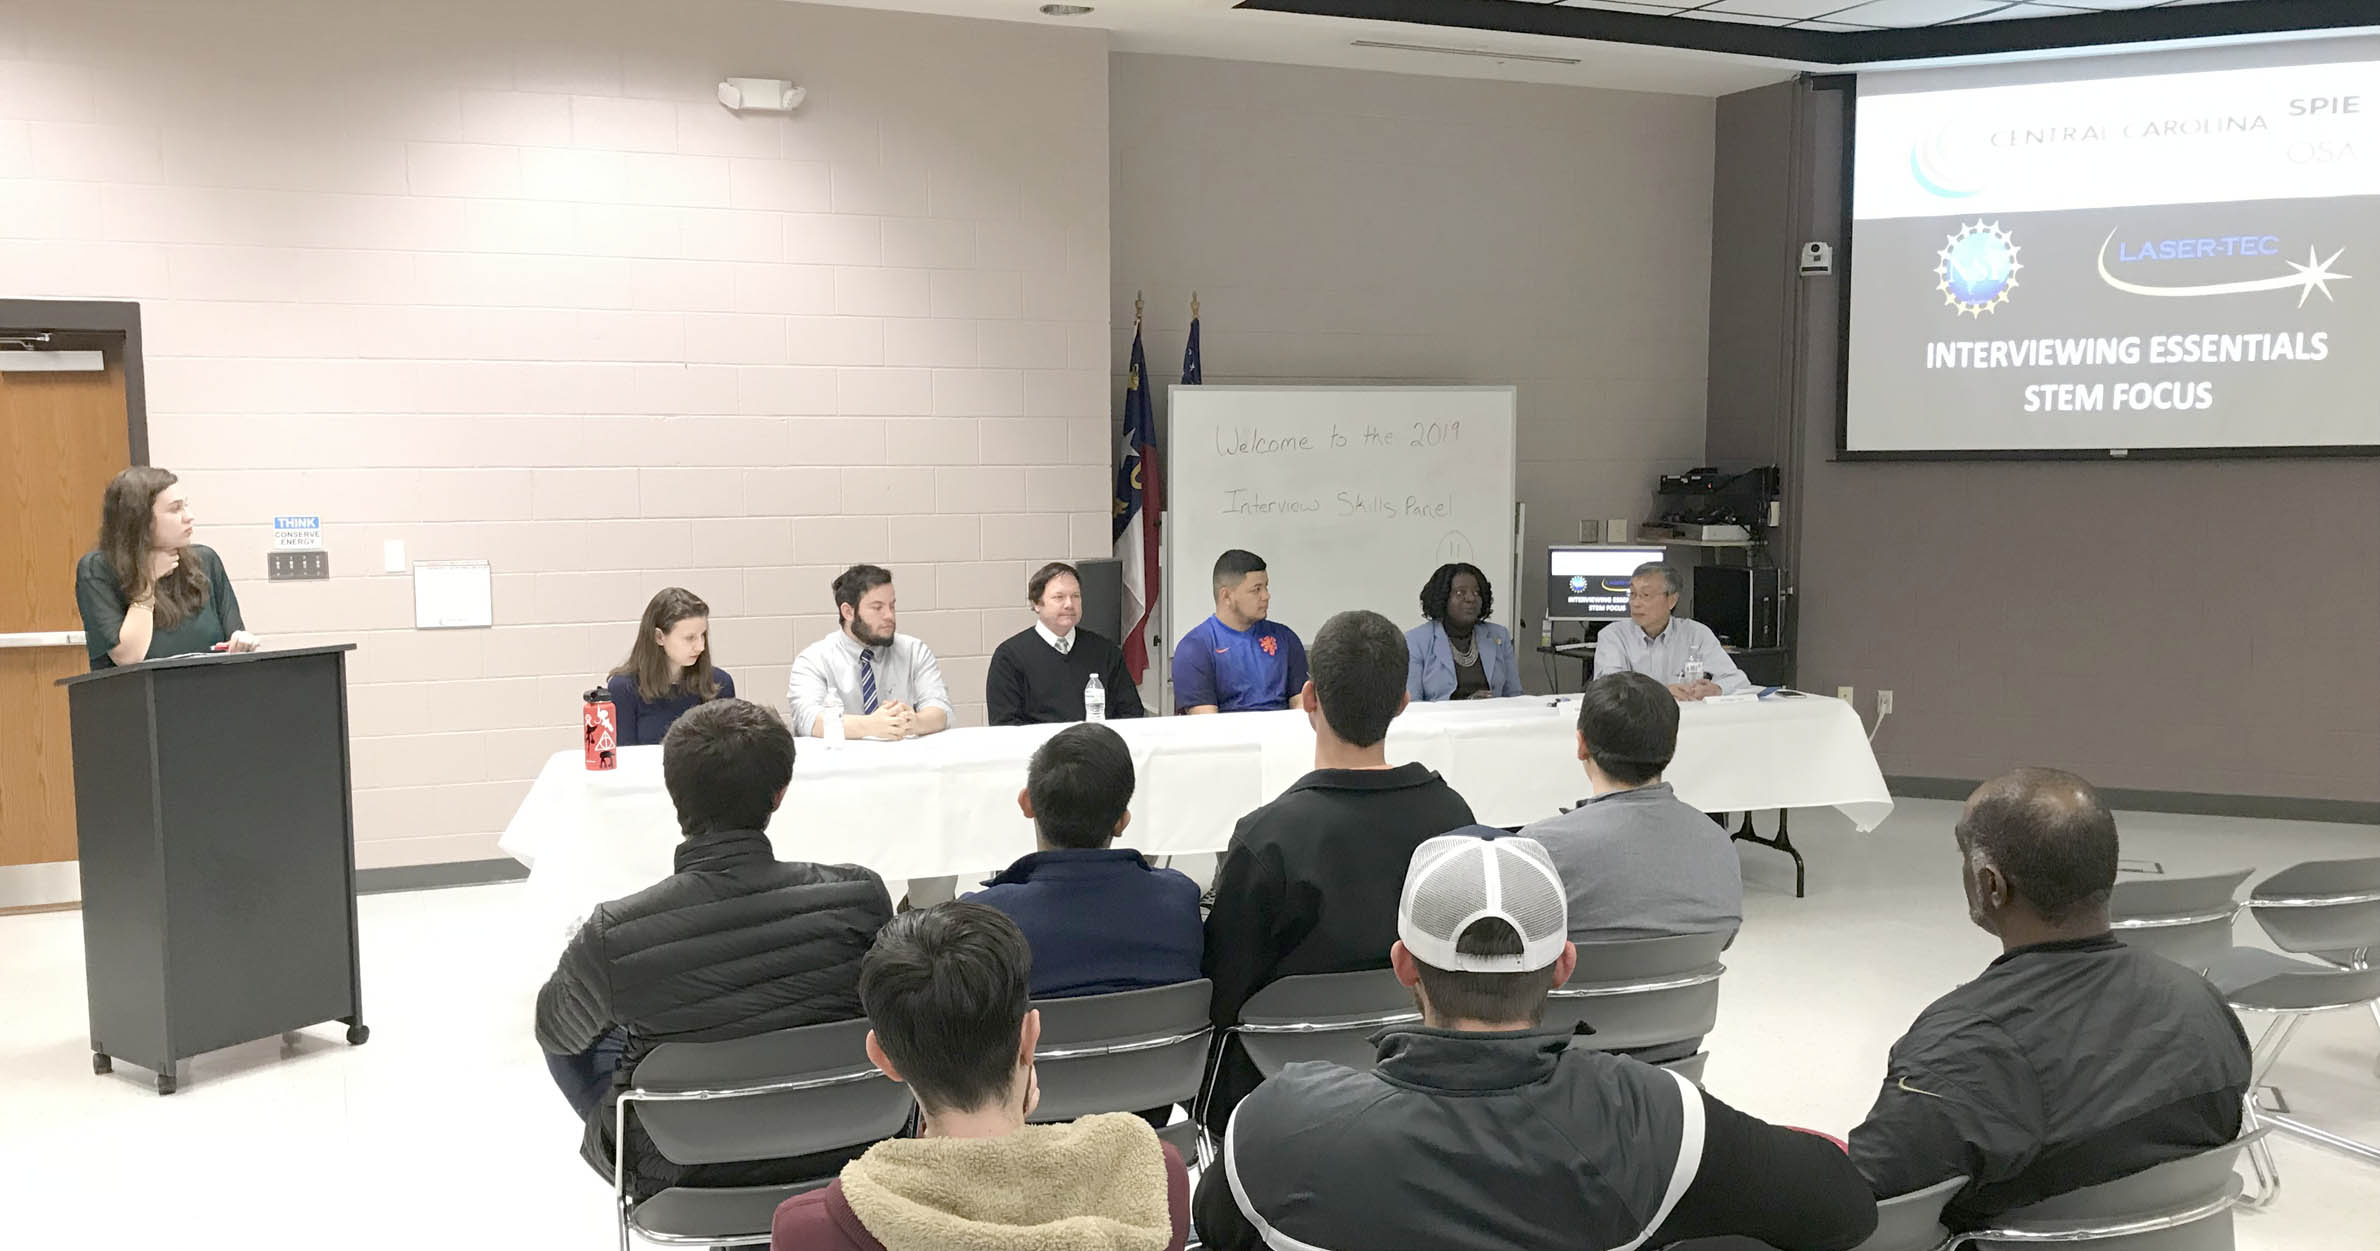 Read the full story, CCCC SPIE Student Chapter hosts 'Interviewing Skills Panel' event